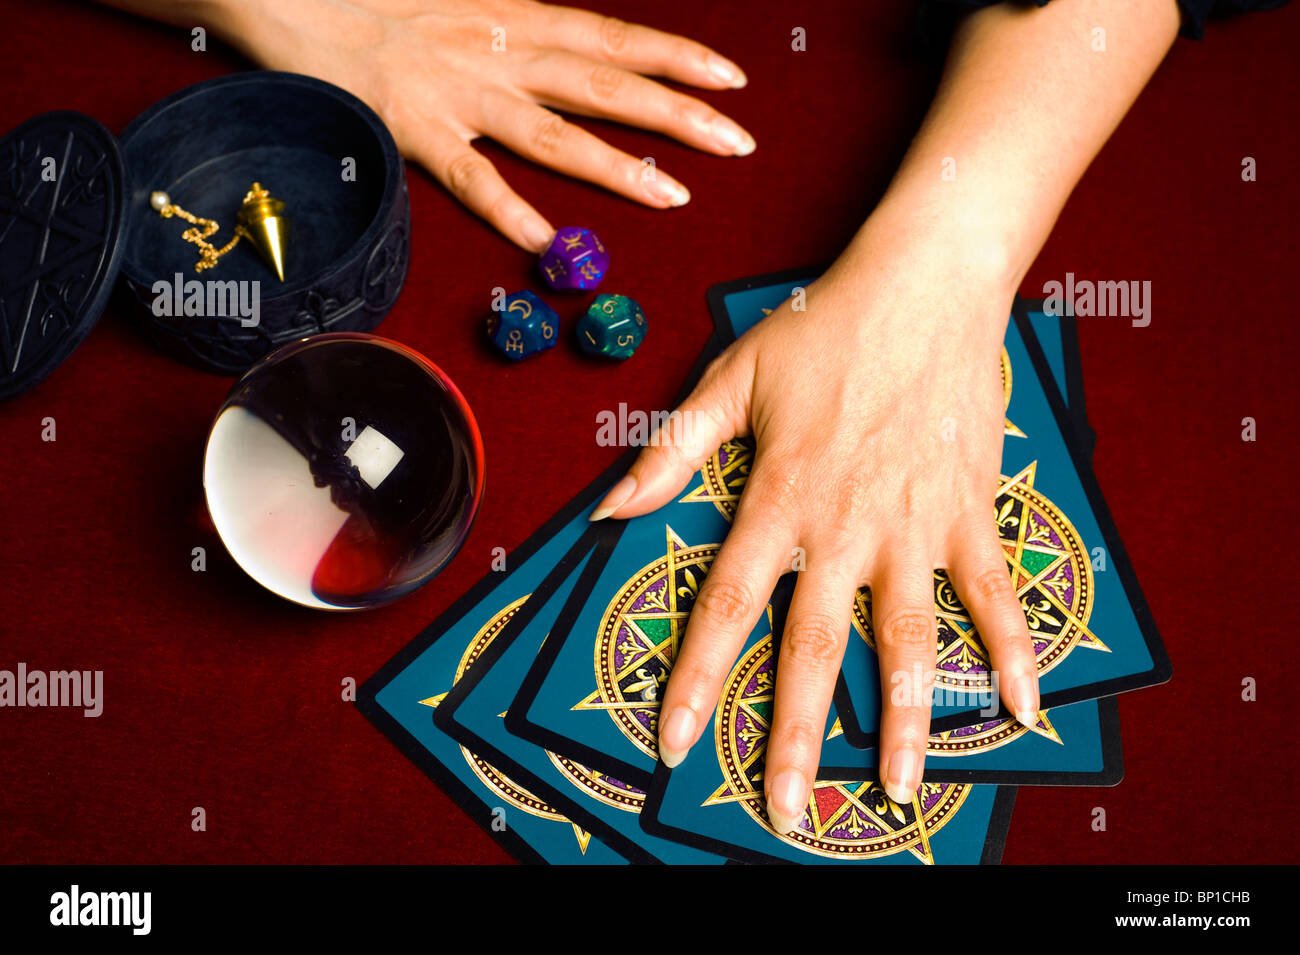 fortune teller during a magic ritual and tarot reading - Stock Image